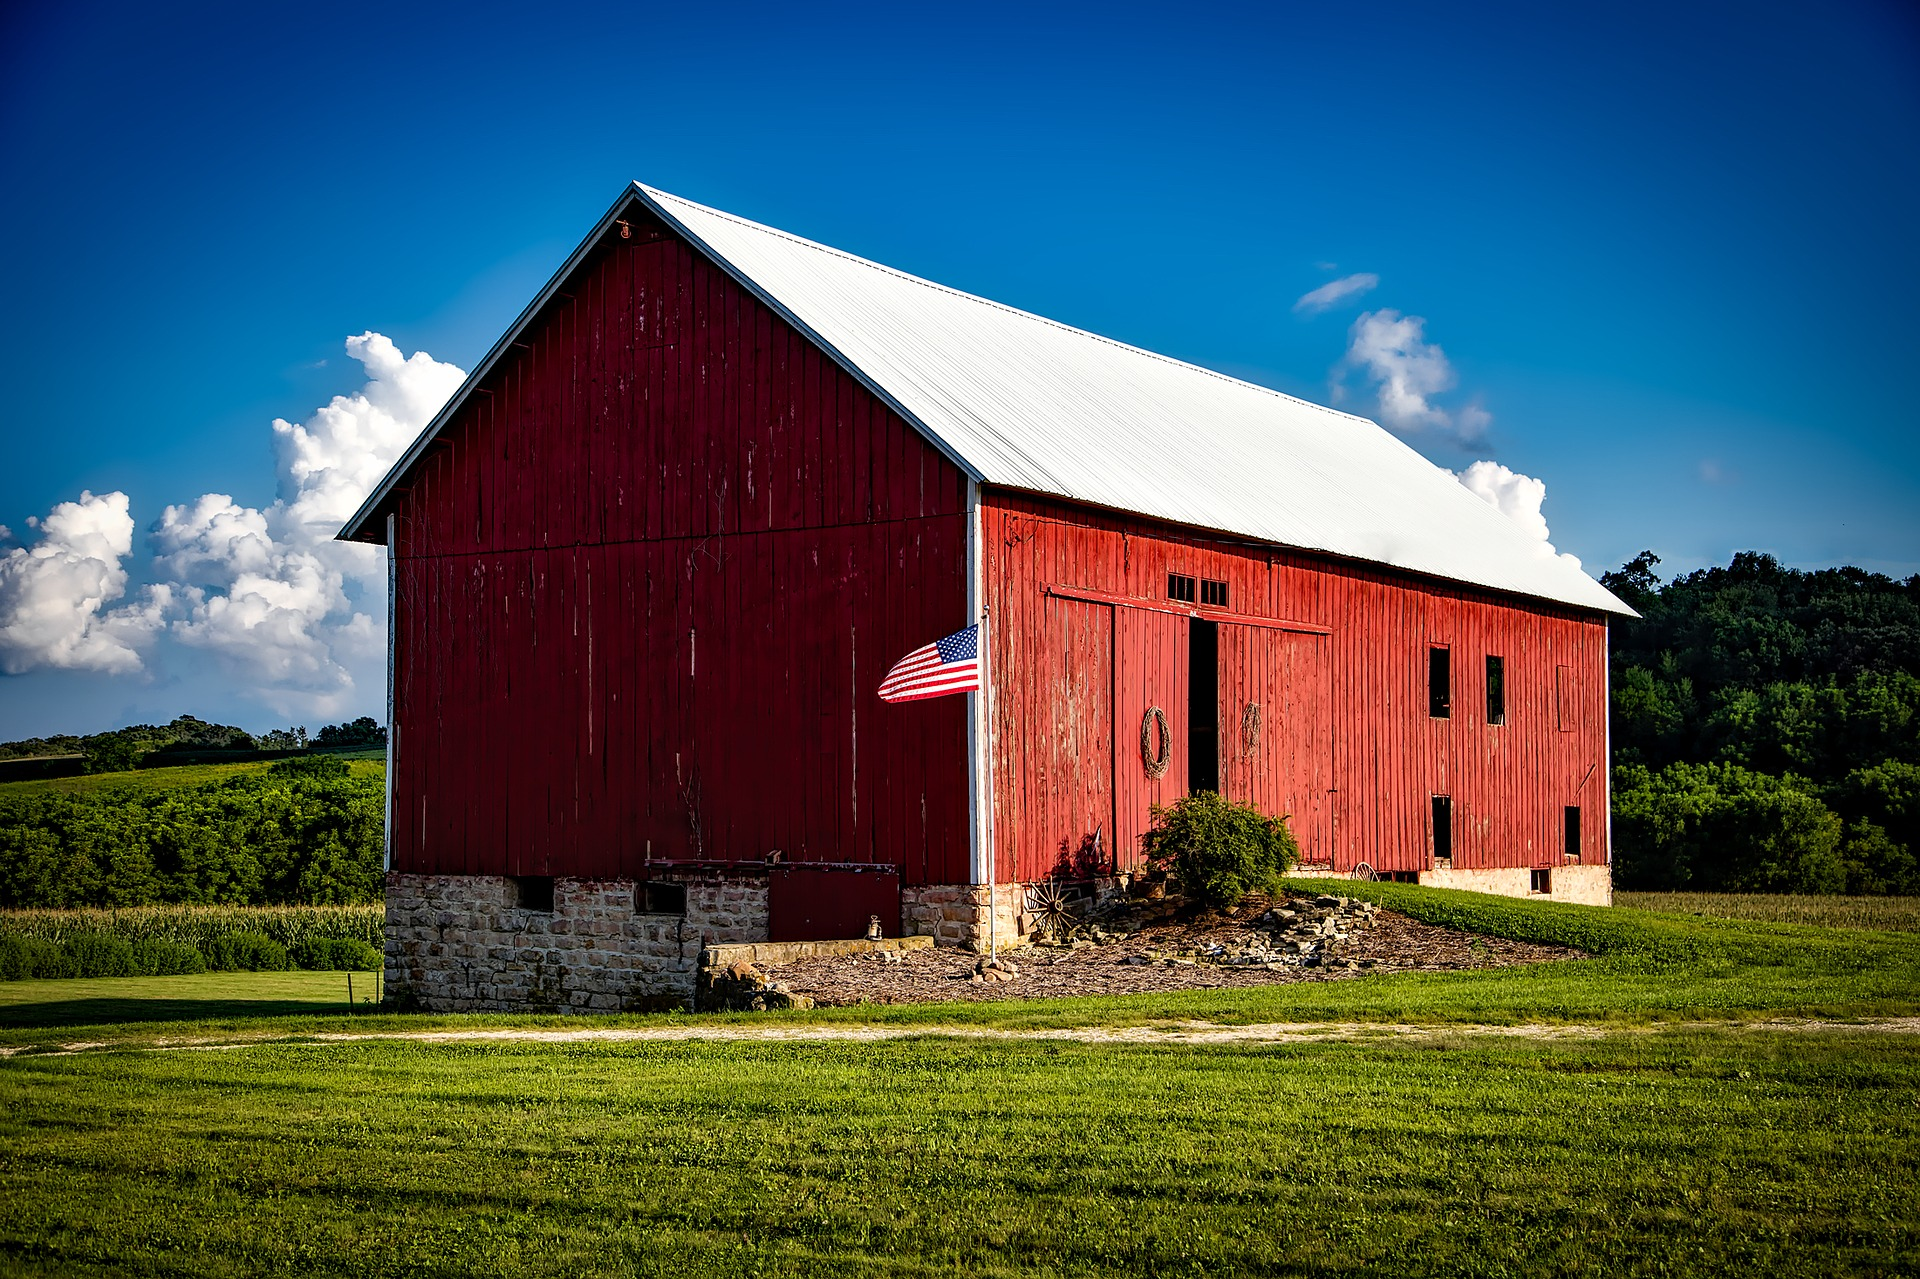 Old Red Barn with American Flag